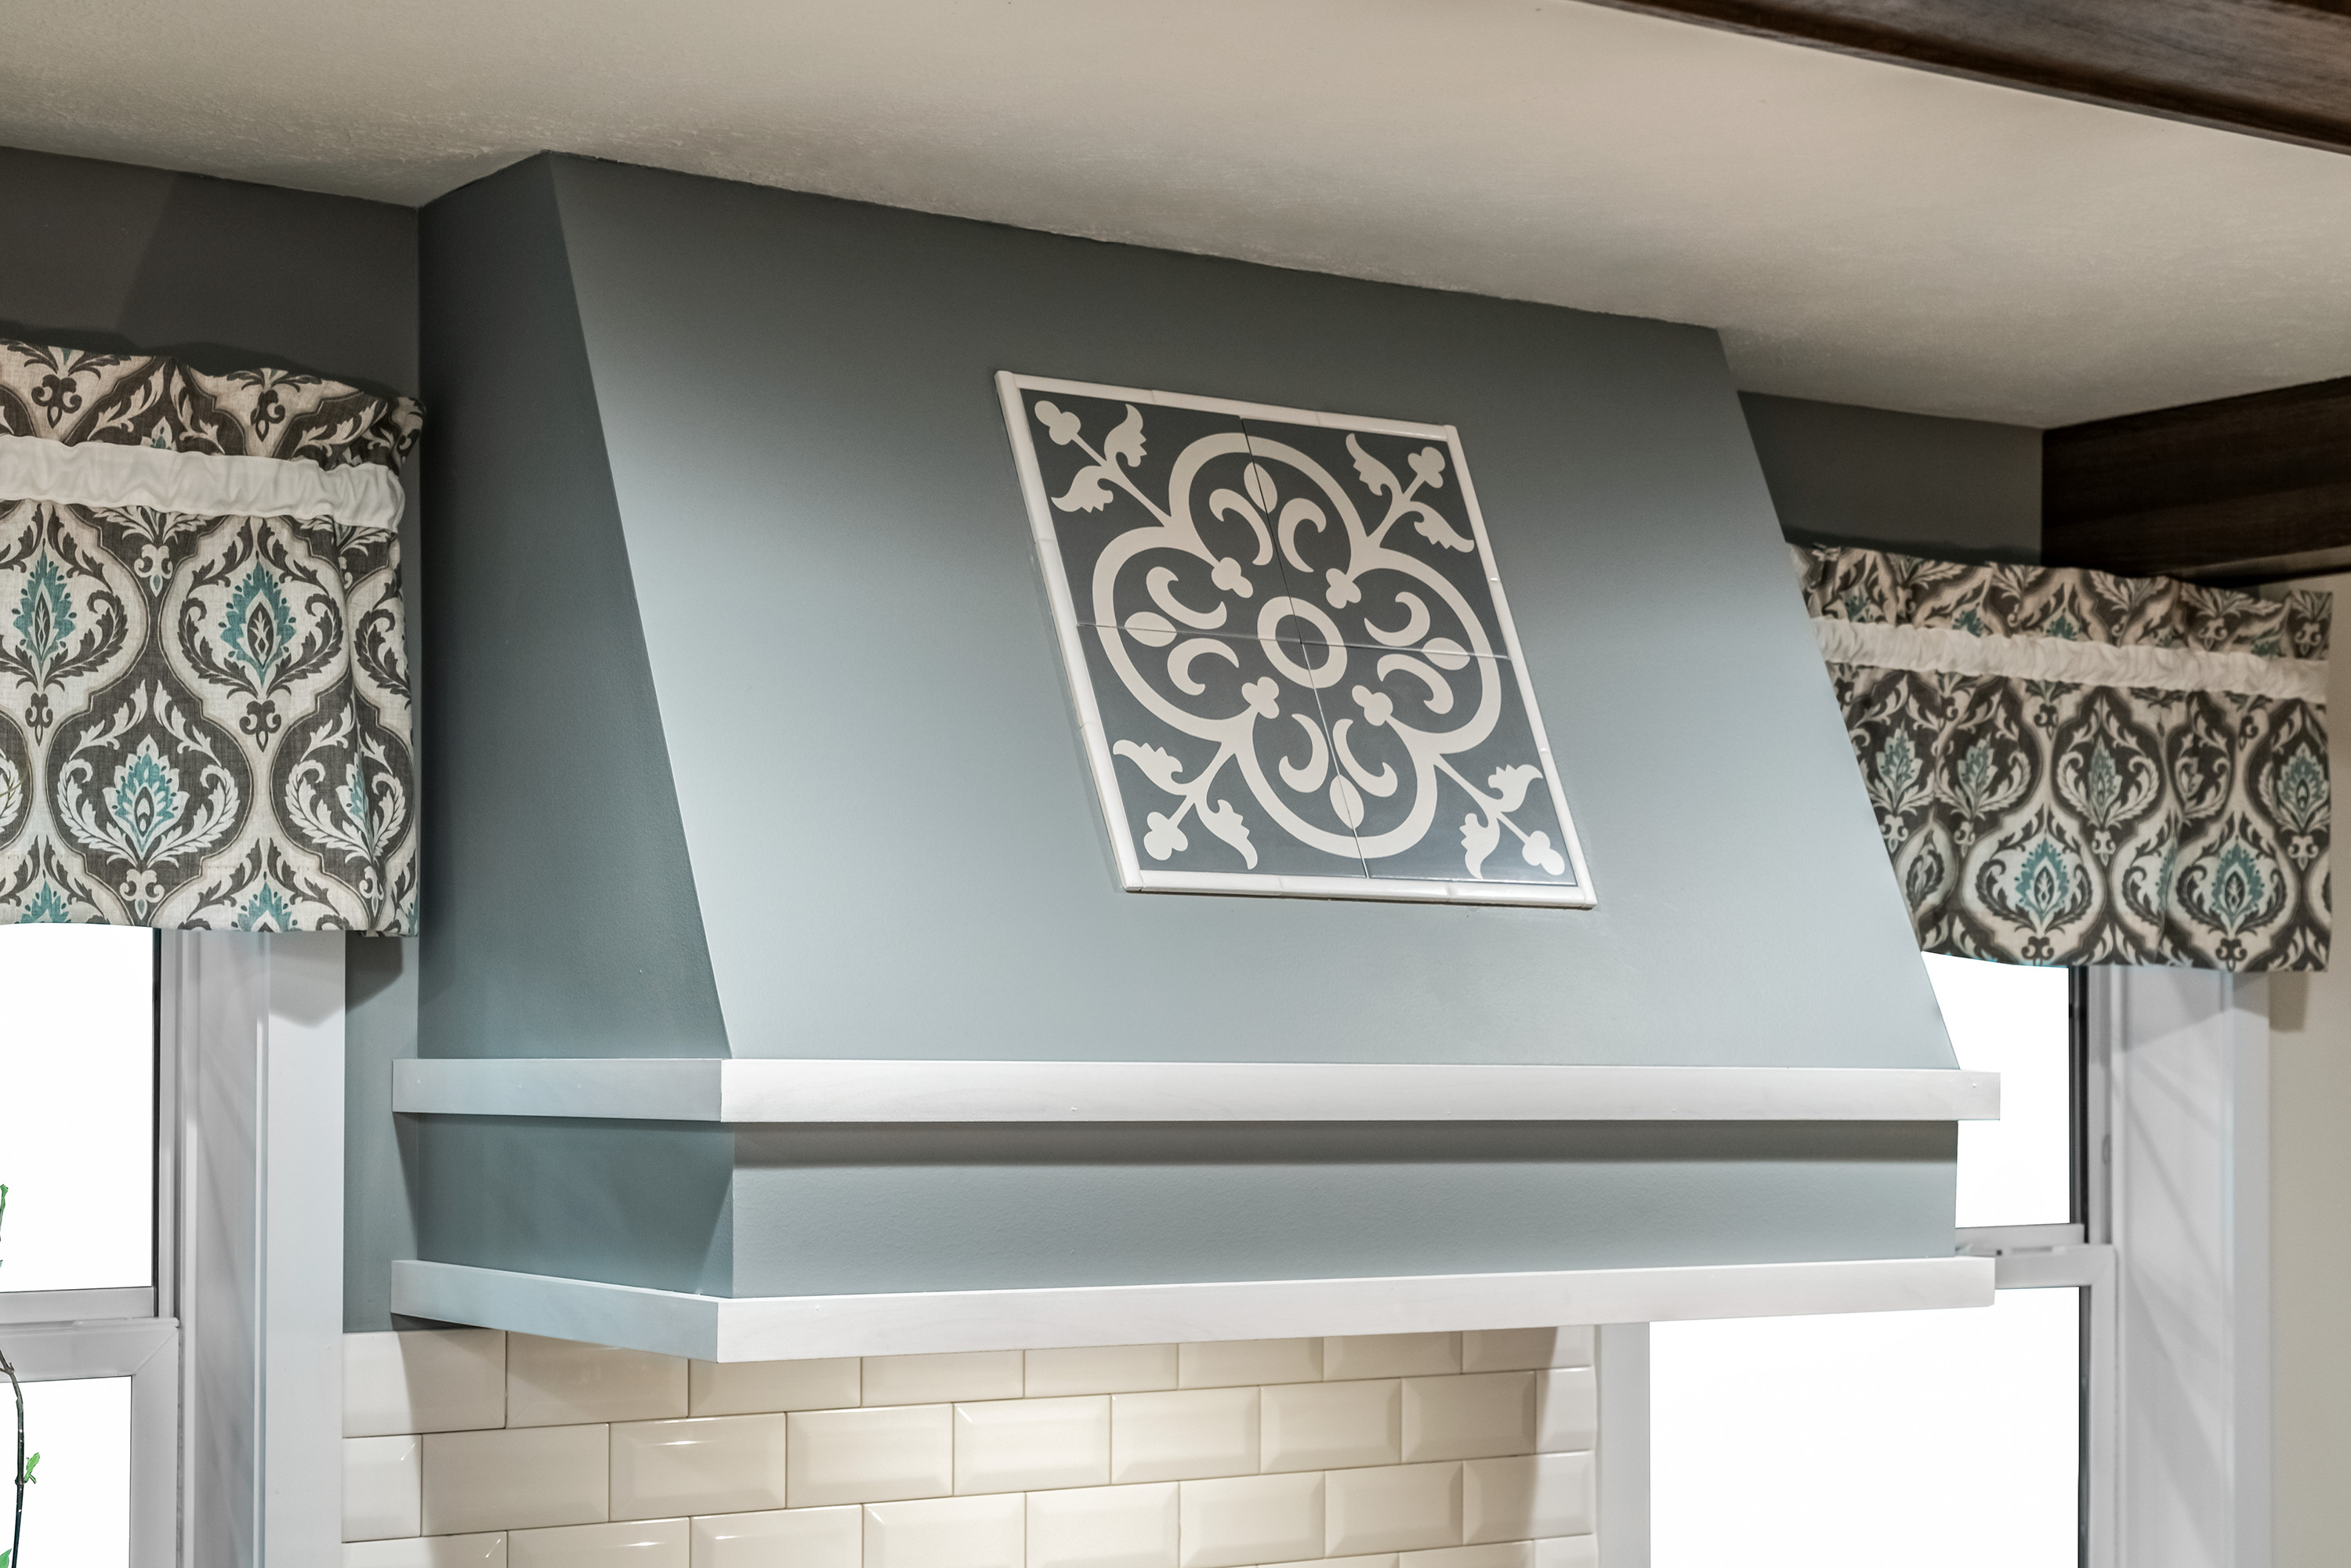 Mobile home kitchen with a large range hood with lace designs on it.